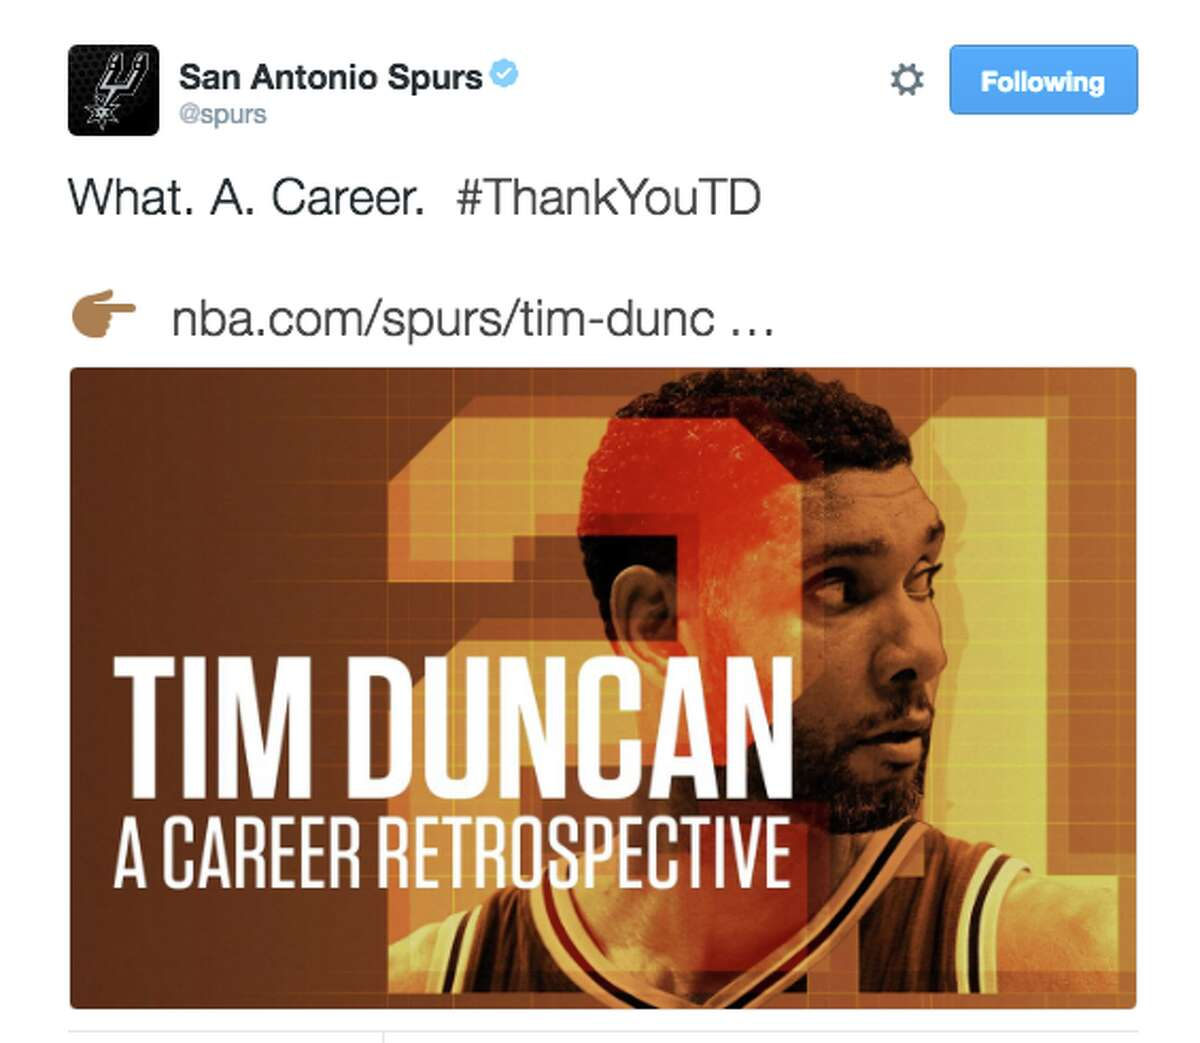 Reactions to Tim Duncan's retirement